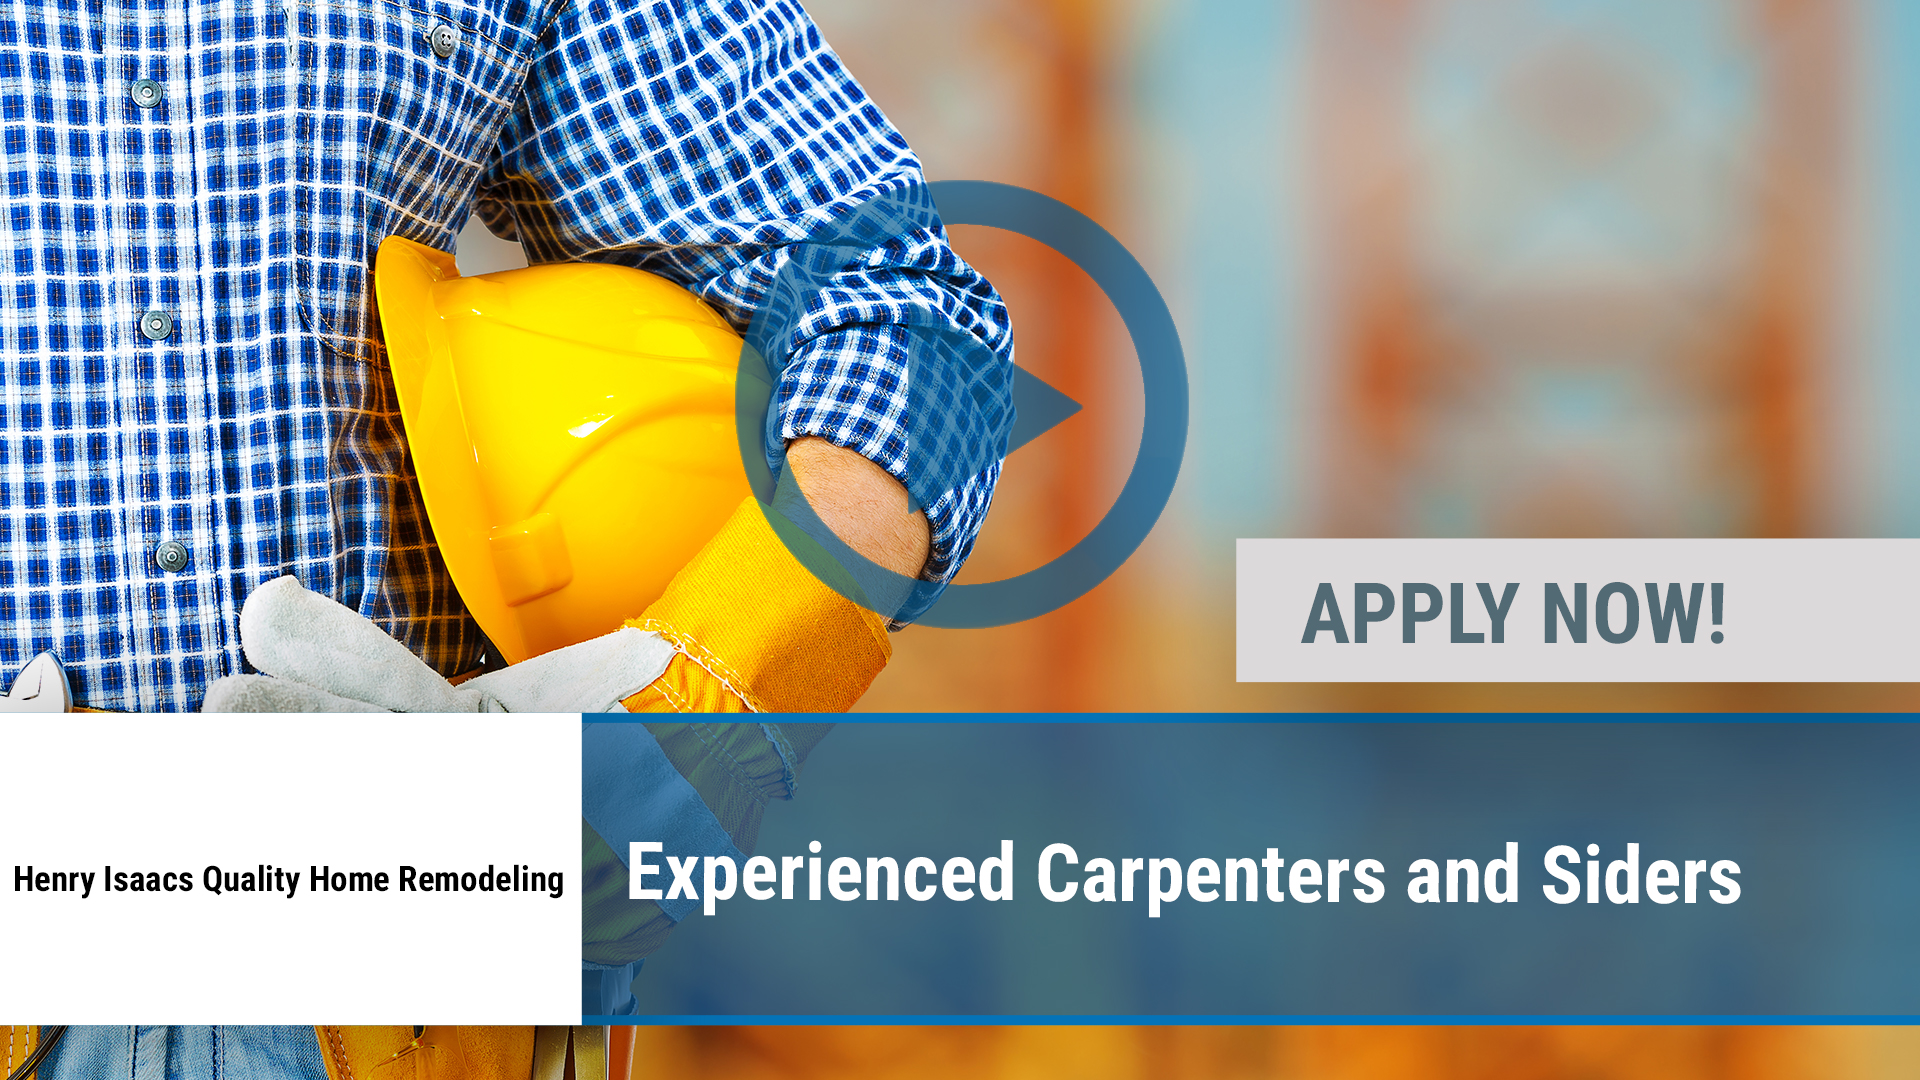 Watch our careers video for available job opening Experienced Carpenters and Siders in Churchville, NY